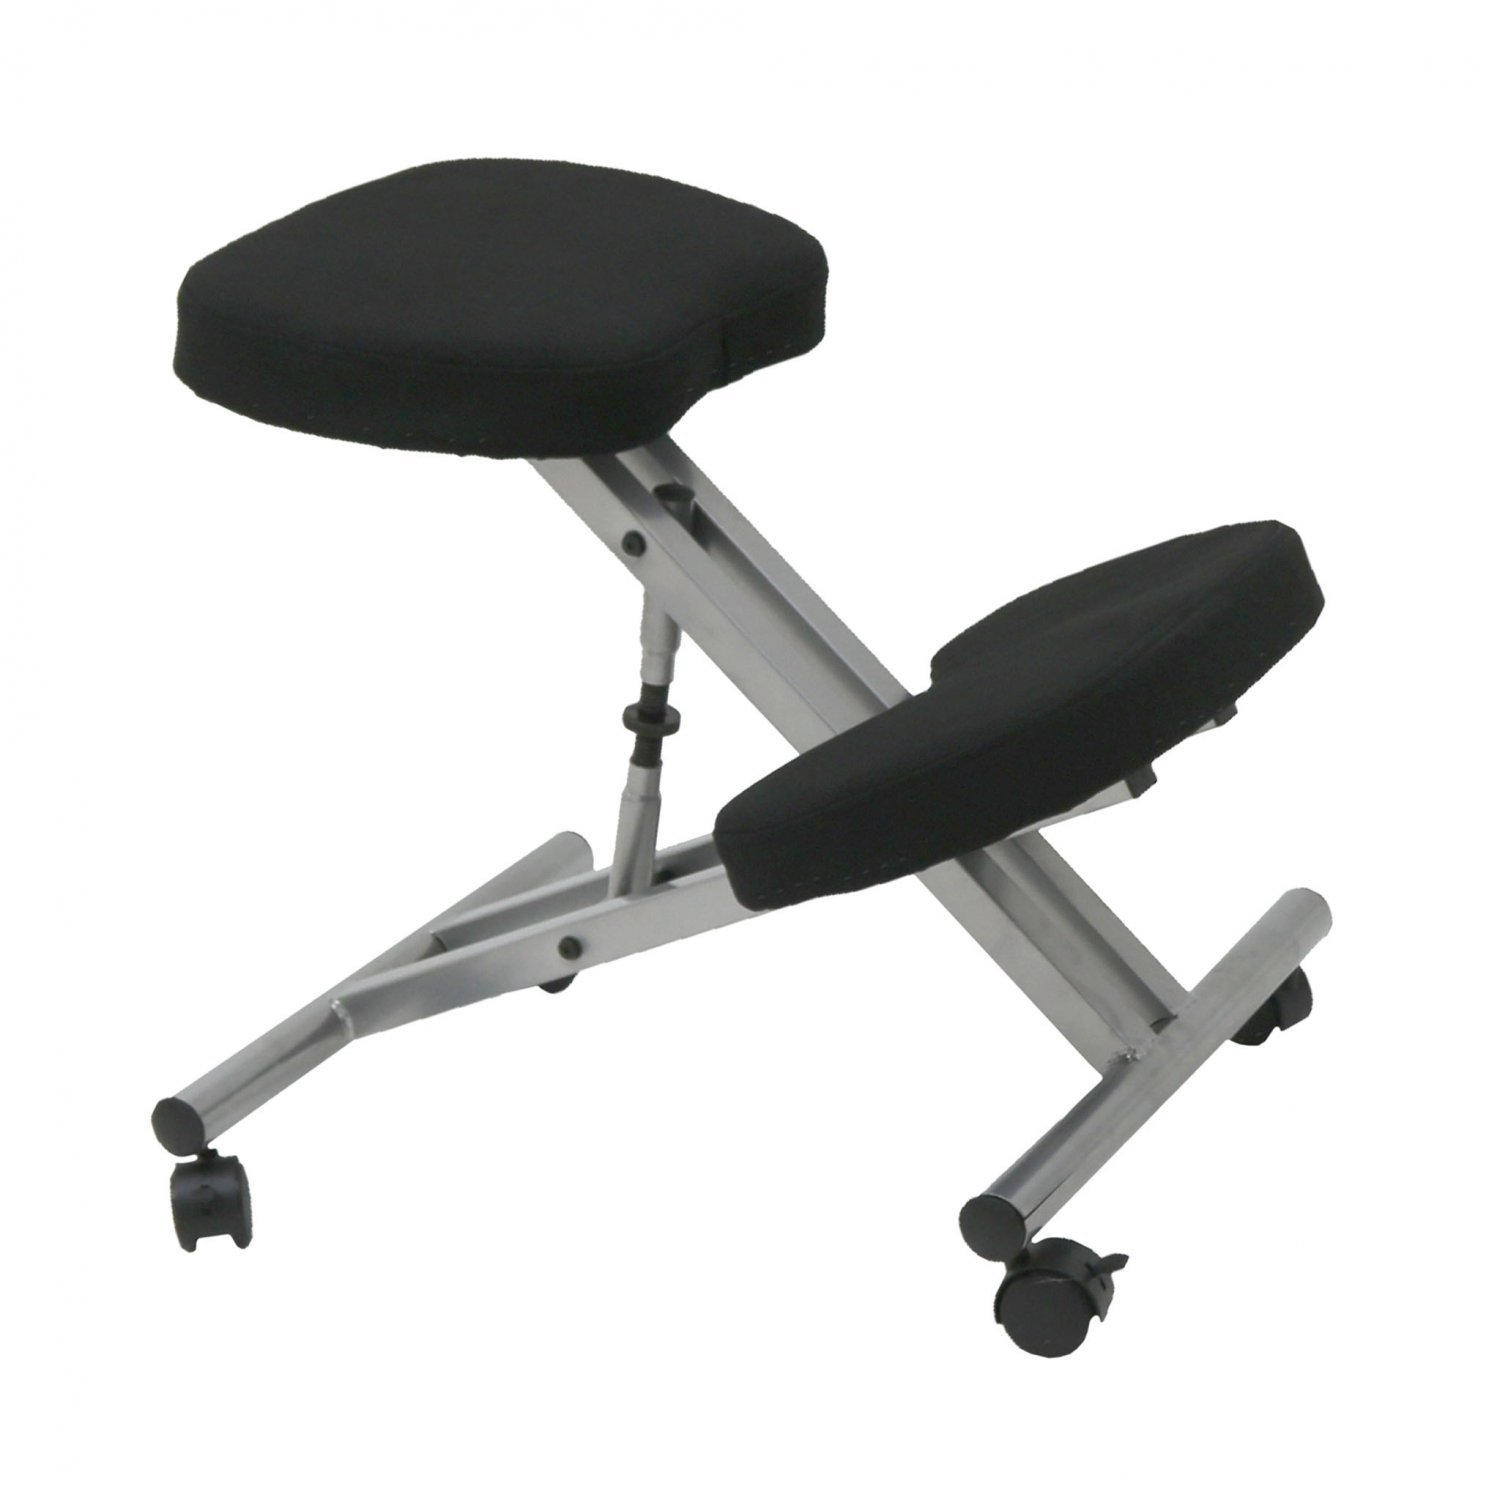 ergonomic chair posture desk dorm kneeling orthopaedic office stool